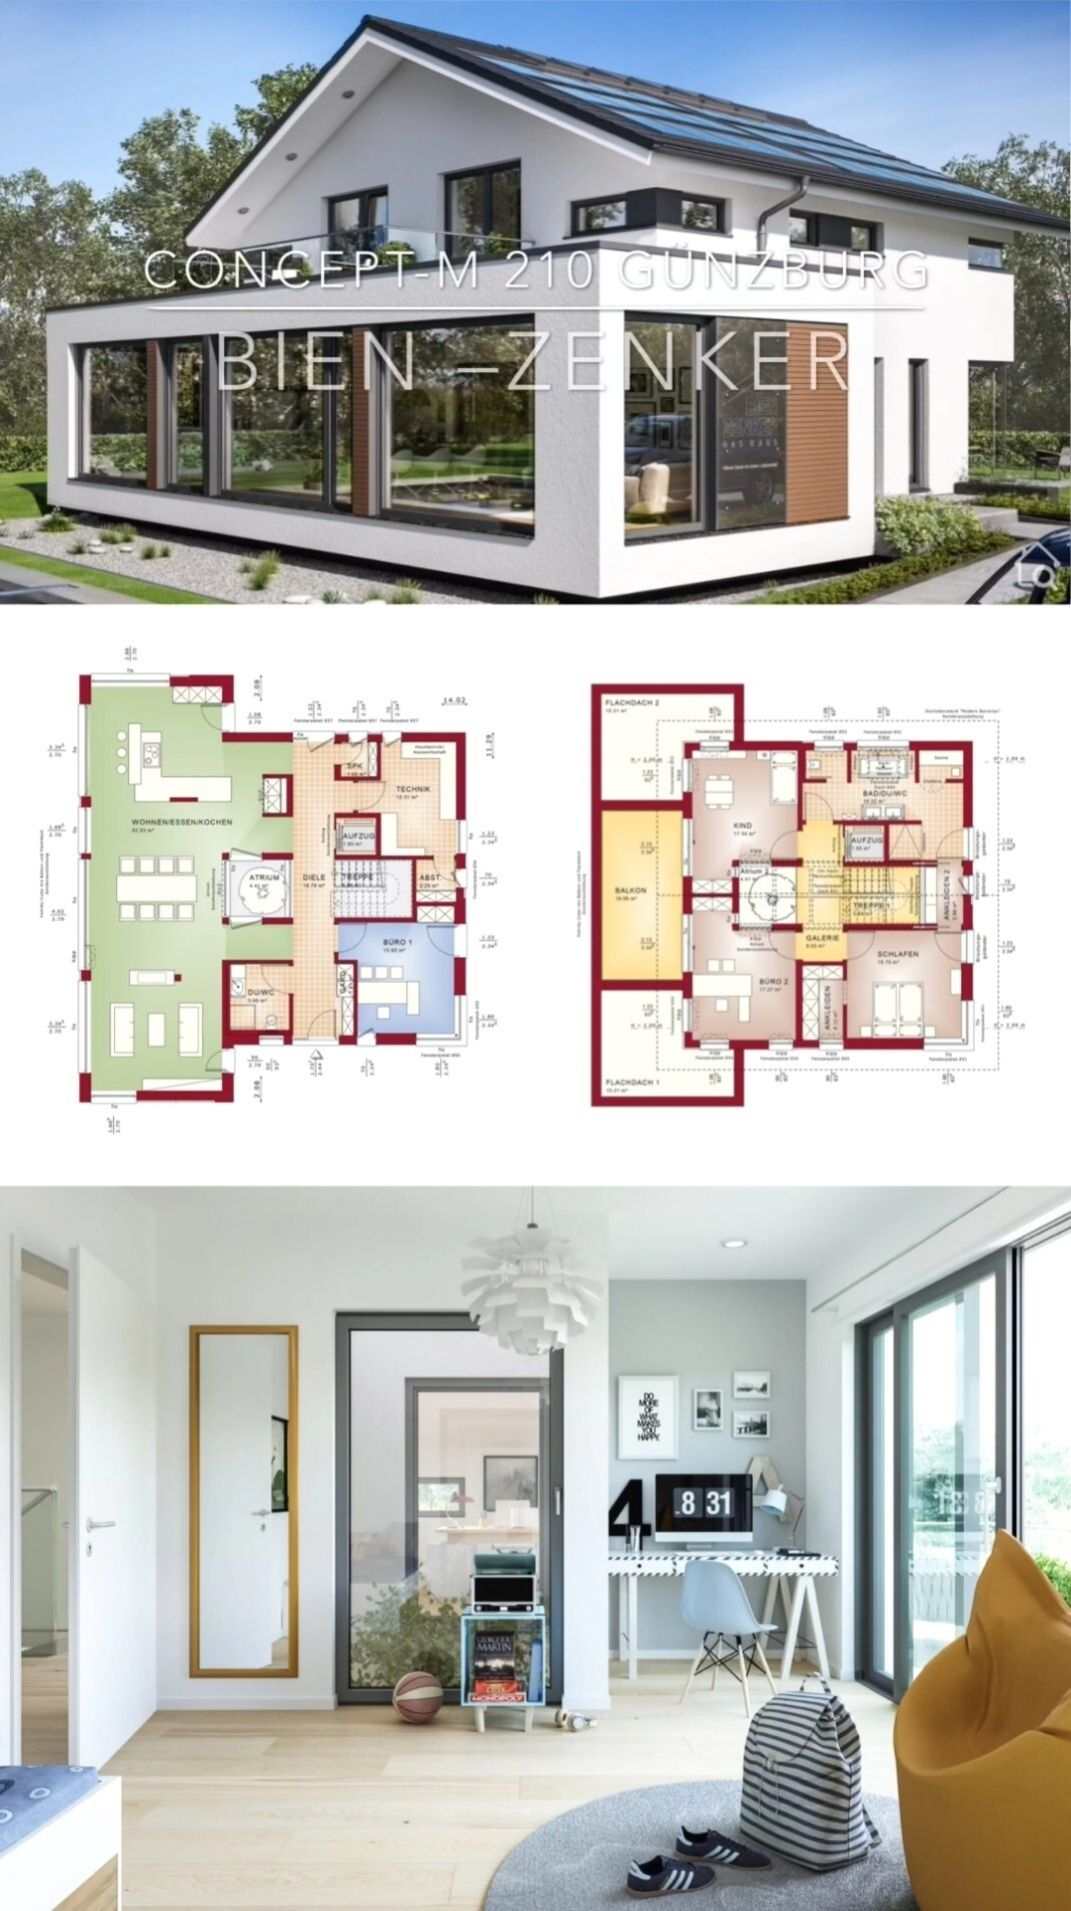 e5f093efb f3c9ae9d5ddf4642 on Modern House Designs Pictures Gallery id=1005773